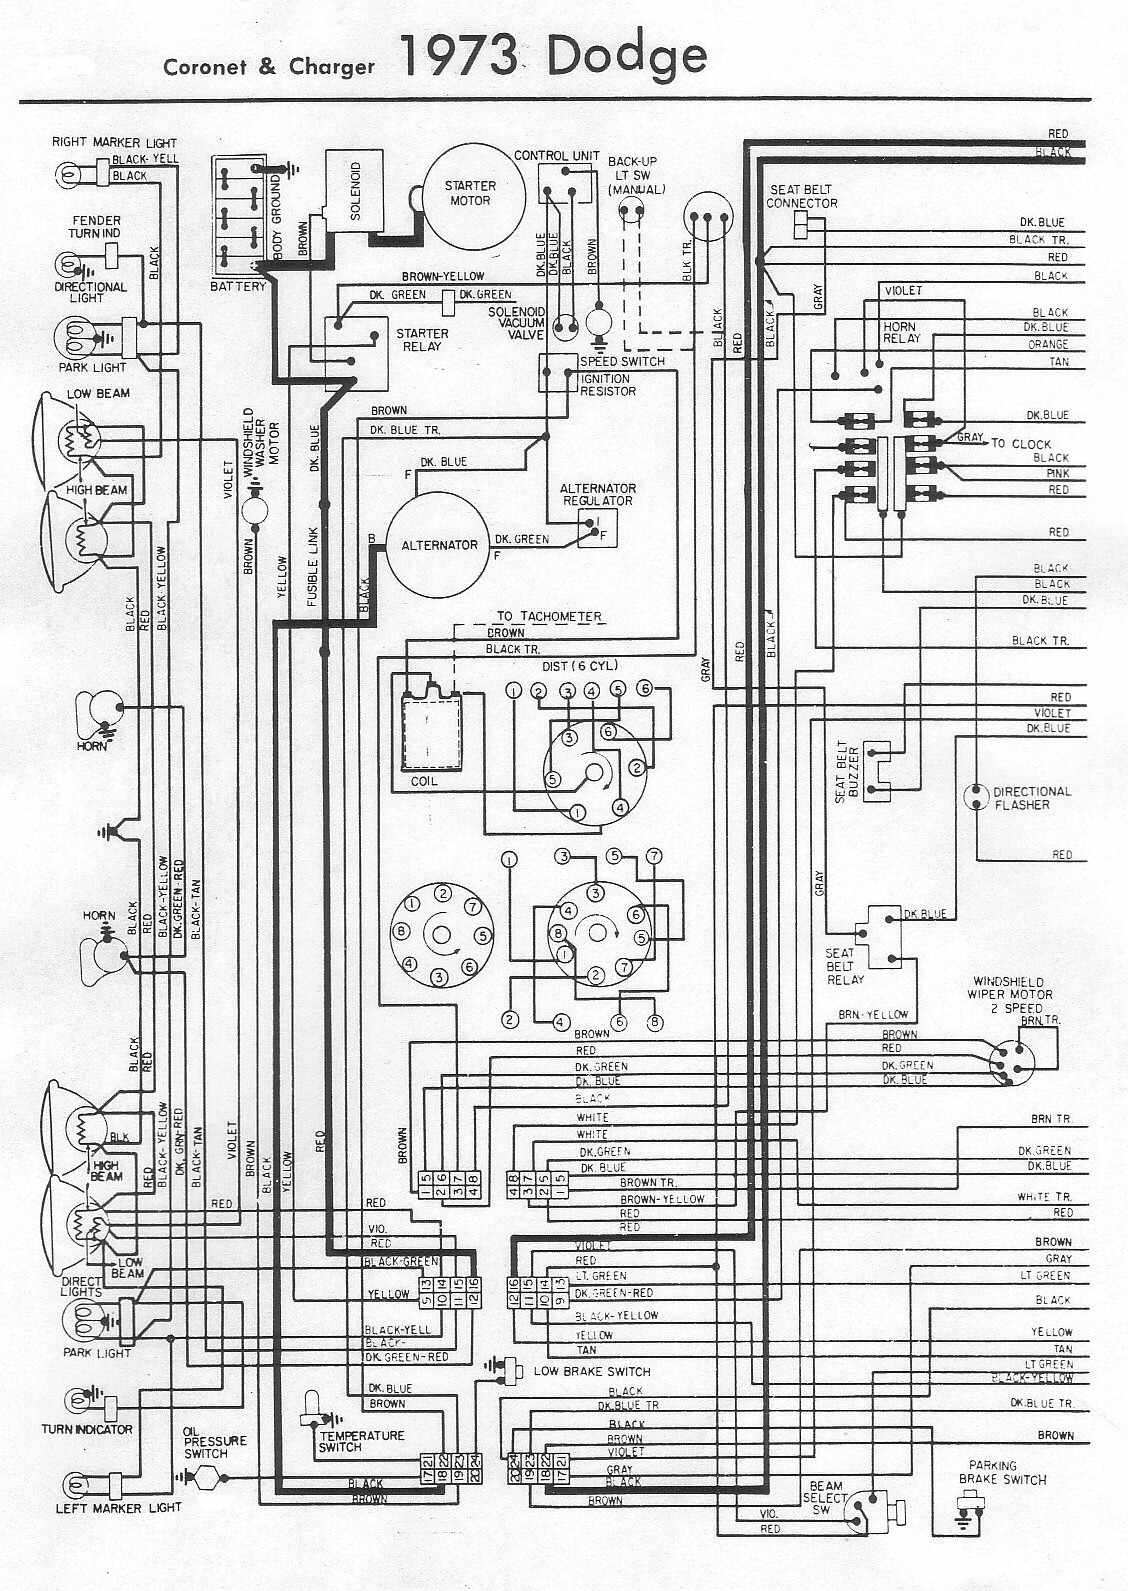 Dodge Dart Wiring Harness - Wiring Diagram All Data on 69 plymouth roadrunner engine, 69 plymouth roadrunner horn, 69 plymouth roadrunner drive shaft, 69 plymouth roadrunner air cleaner,